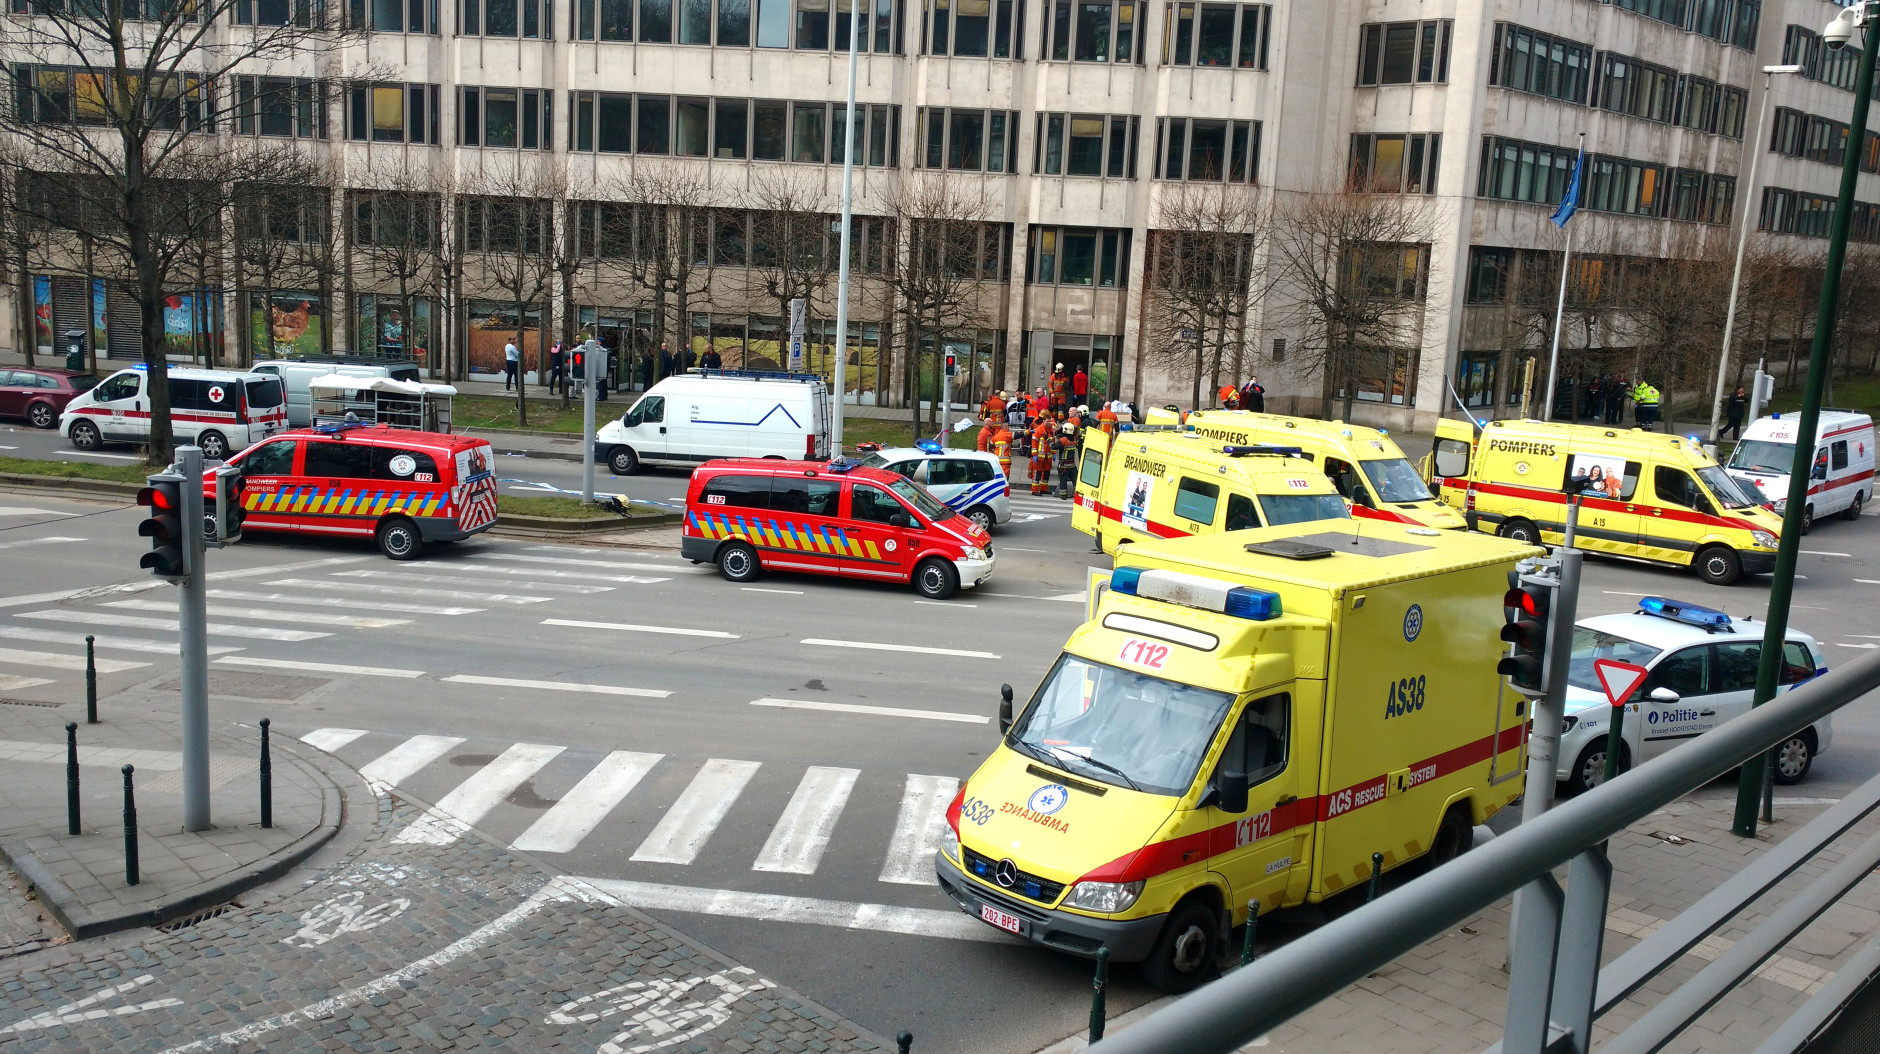 Emergency services after a explosion in a main metro station in Brussels on Tuesday, March 22, 2016. Explosions rocked the Brussels airport and the subway system Tuesday, killing at least 13 people and injuring many others just days after the main suspect in the November Paris attacks was arrested in the city, police said. (AP Photo/Sylvan Plazy)